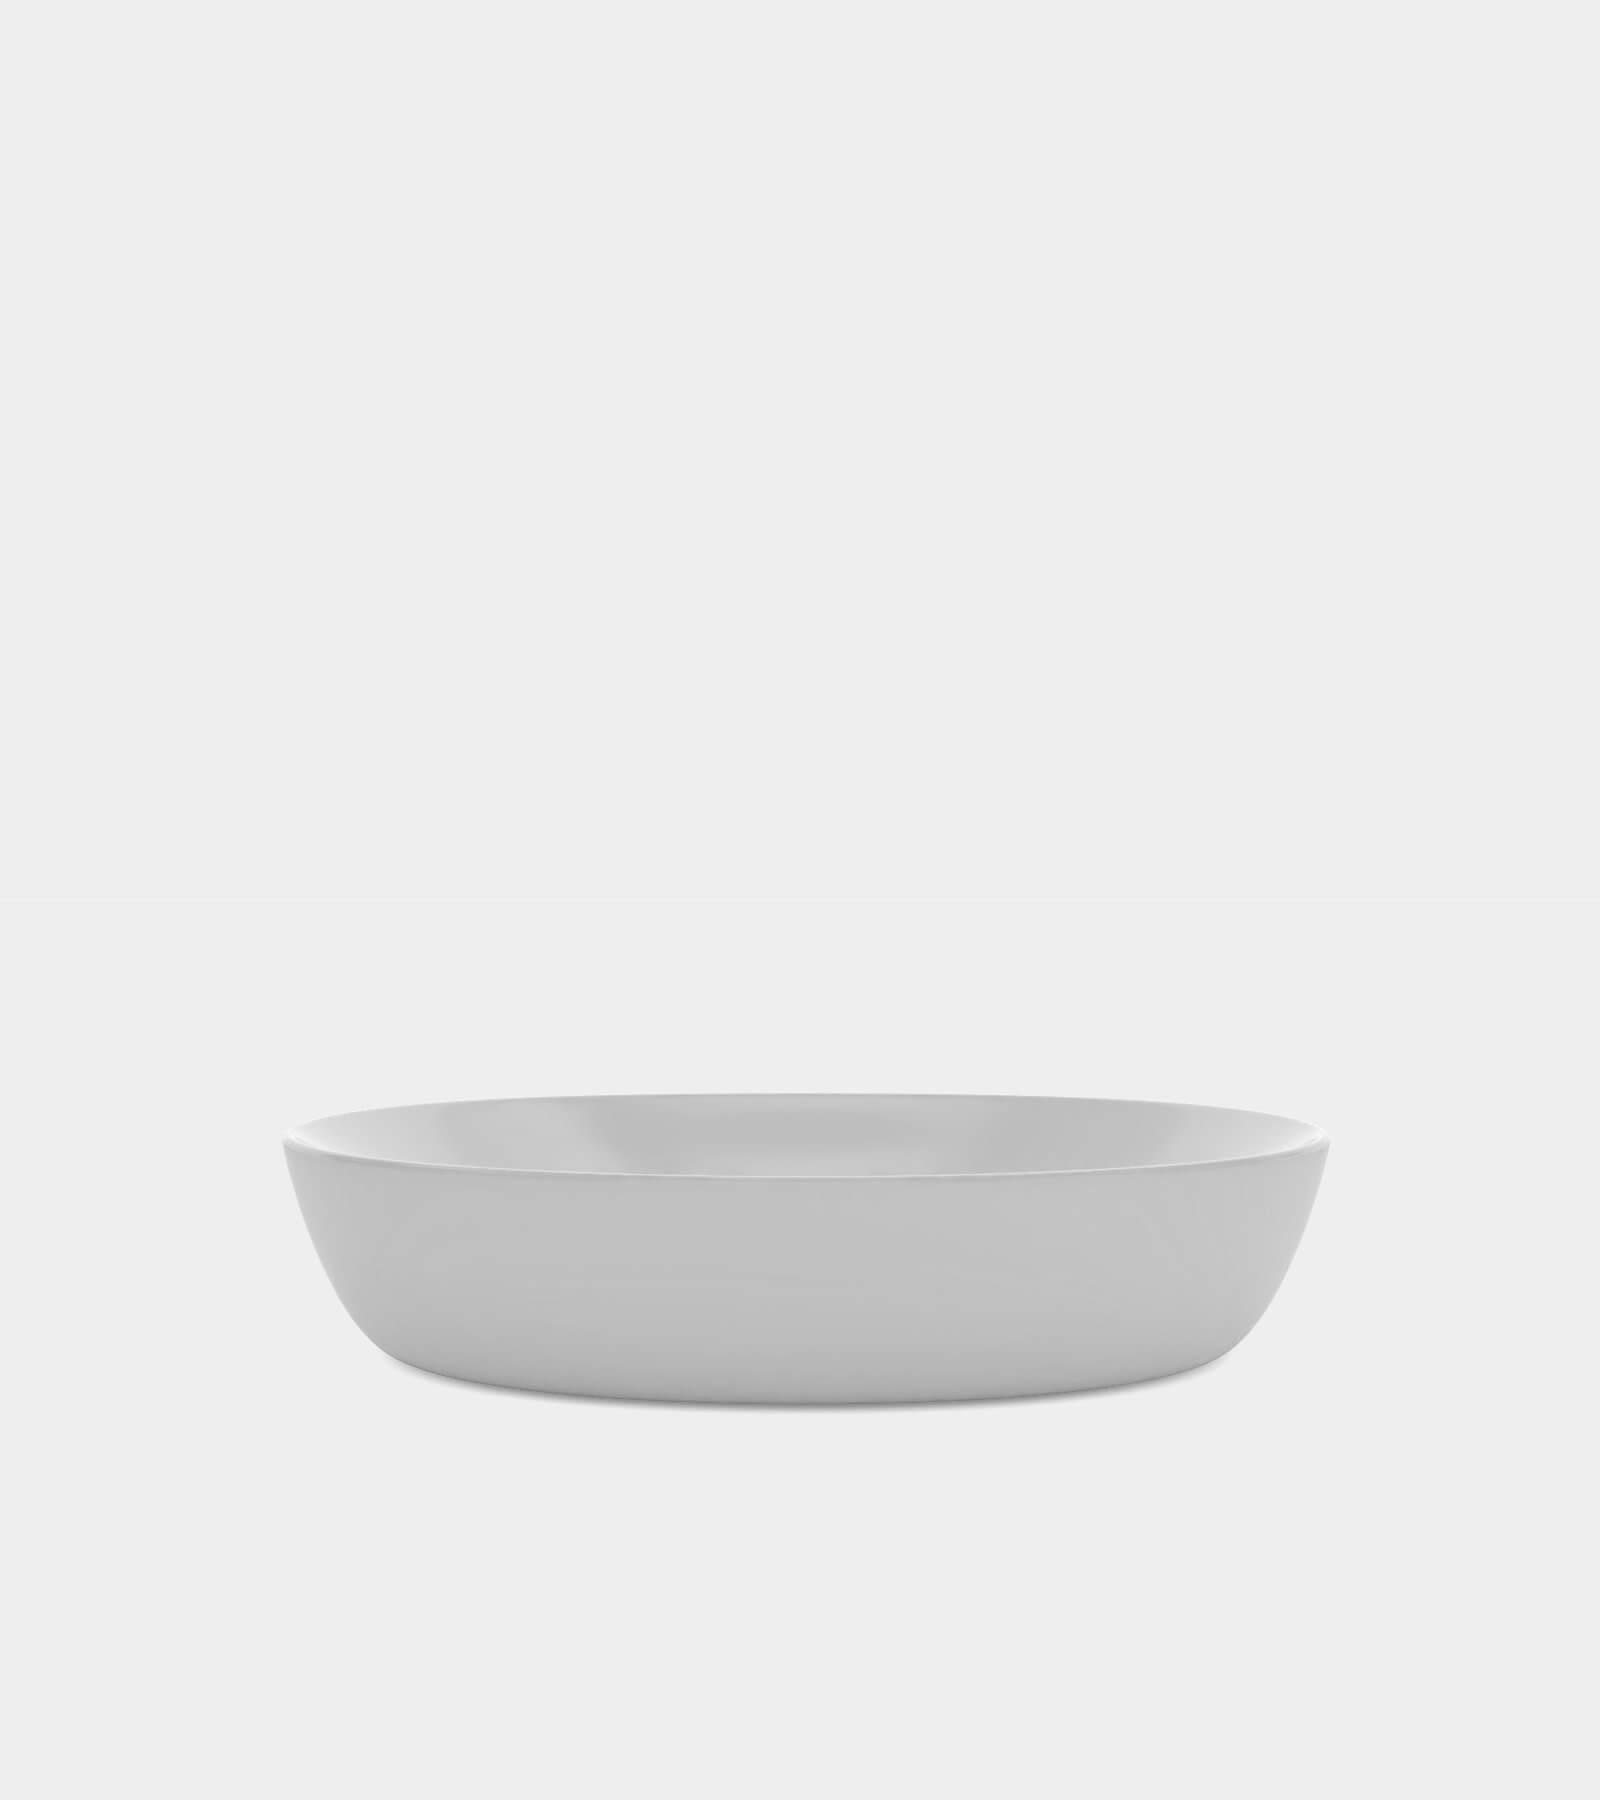 White wash basin with a round shape 2 3D Model